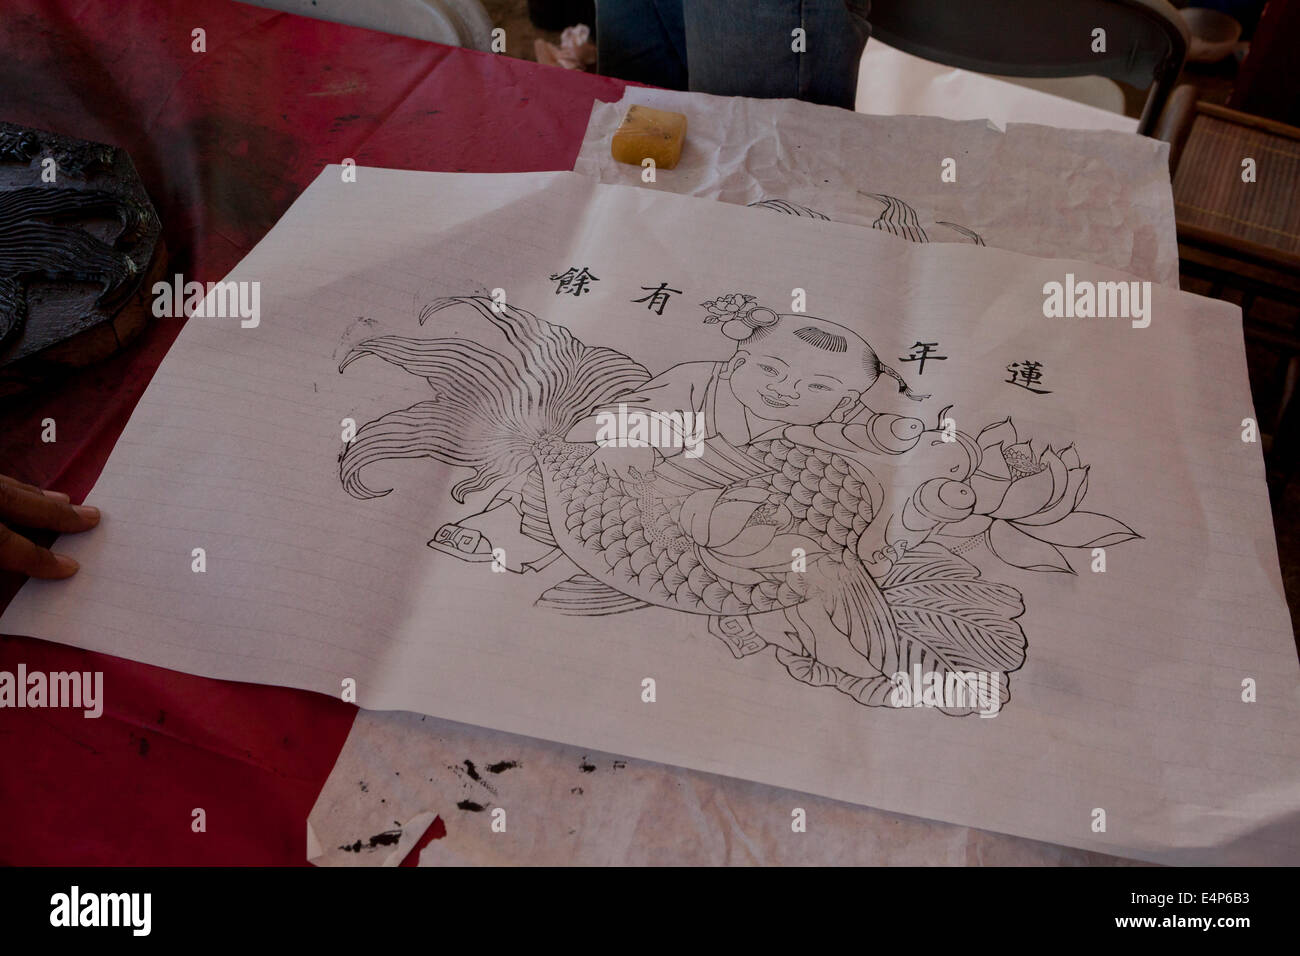 Chinese woodblock print - Stock Image